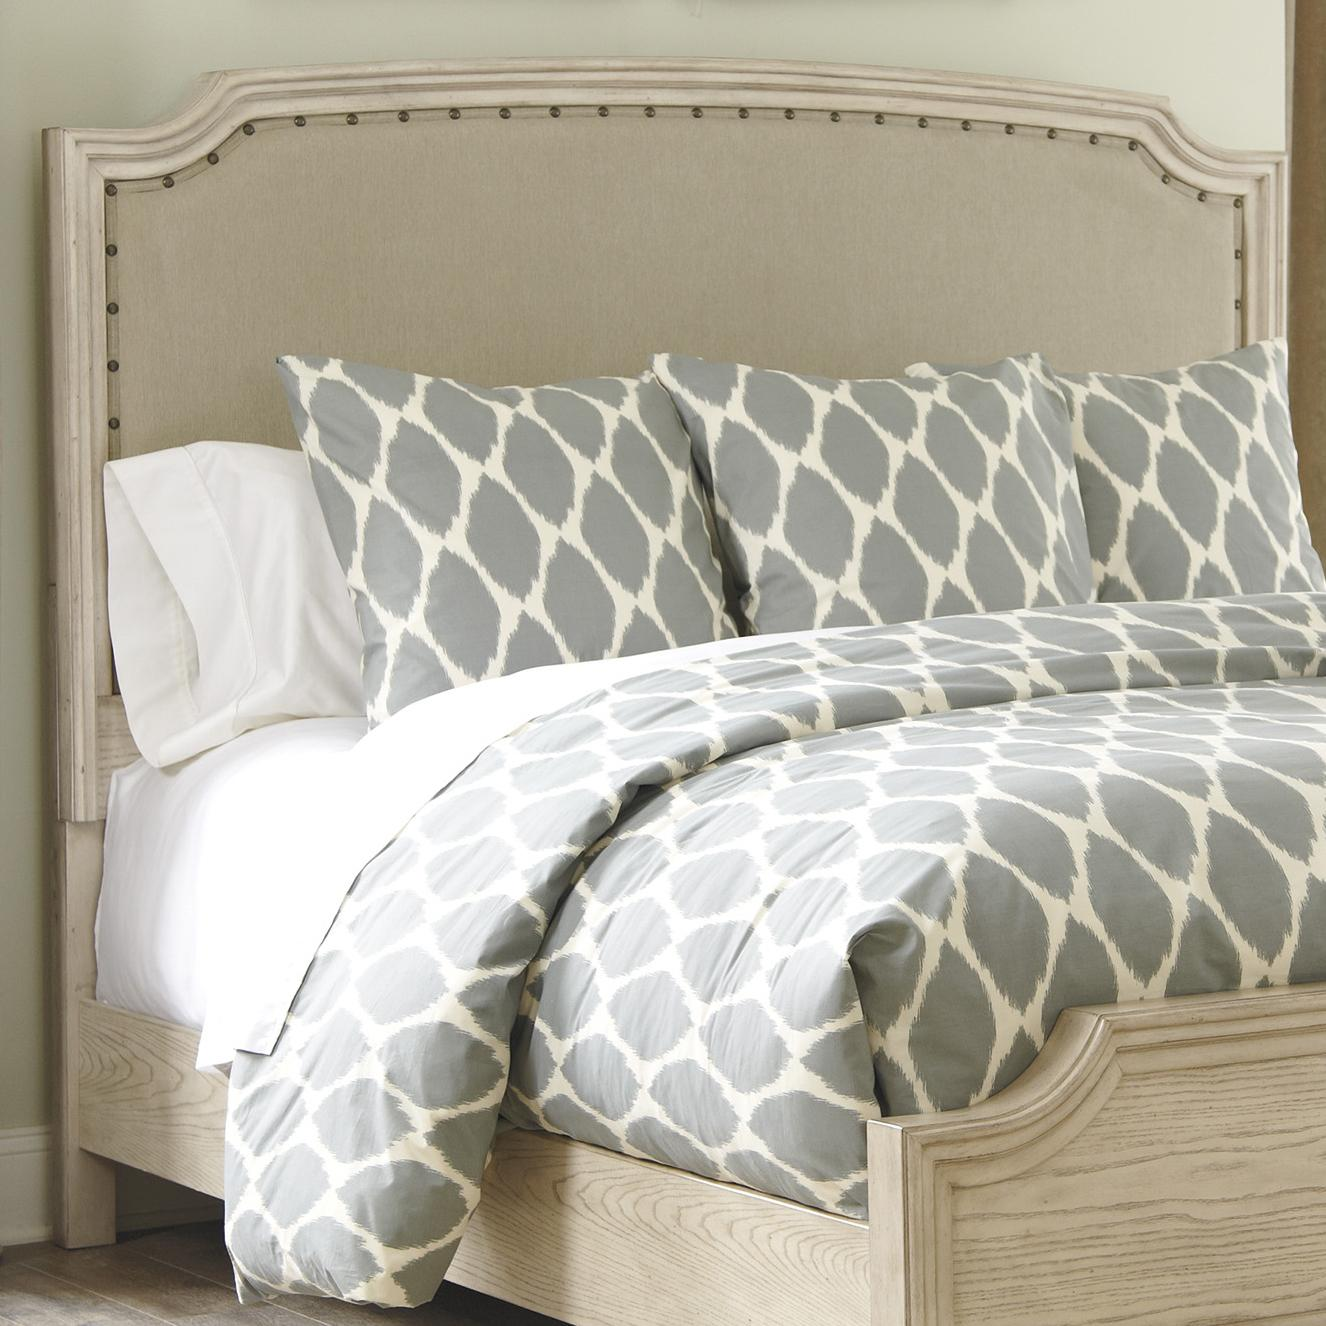 sleigh cal nail bed upholstered with trim king california products furniture head headboard